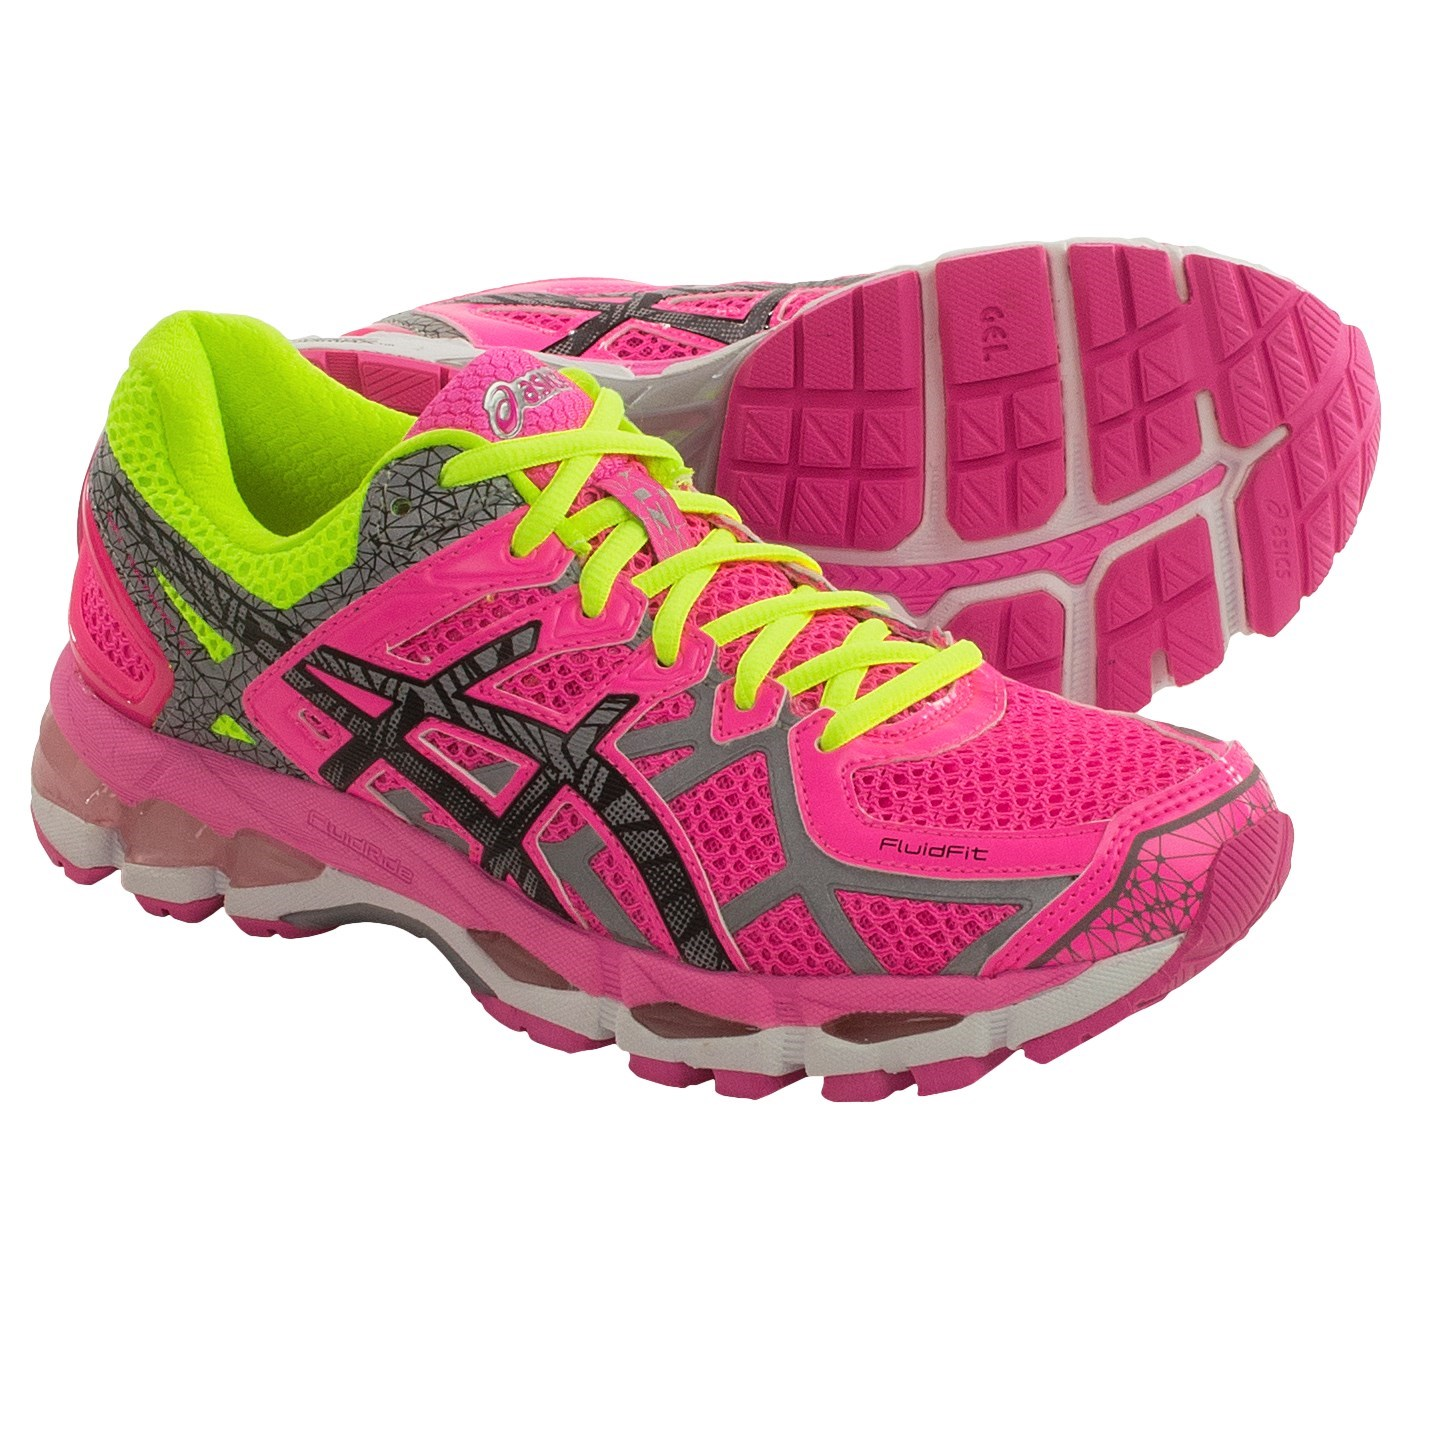 asics gel kayano 21 lite show running shoes for women save 29. Black Bedroom Furniture Sets. Home Design Ideas